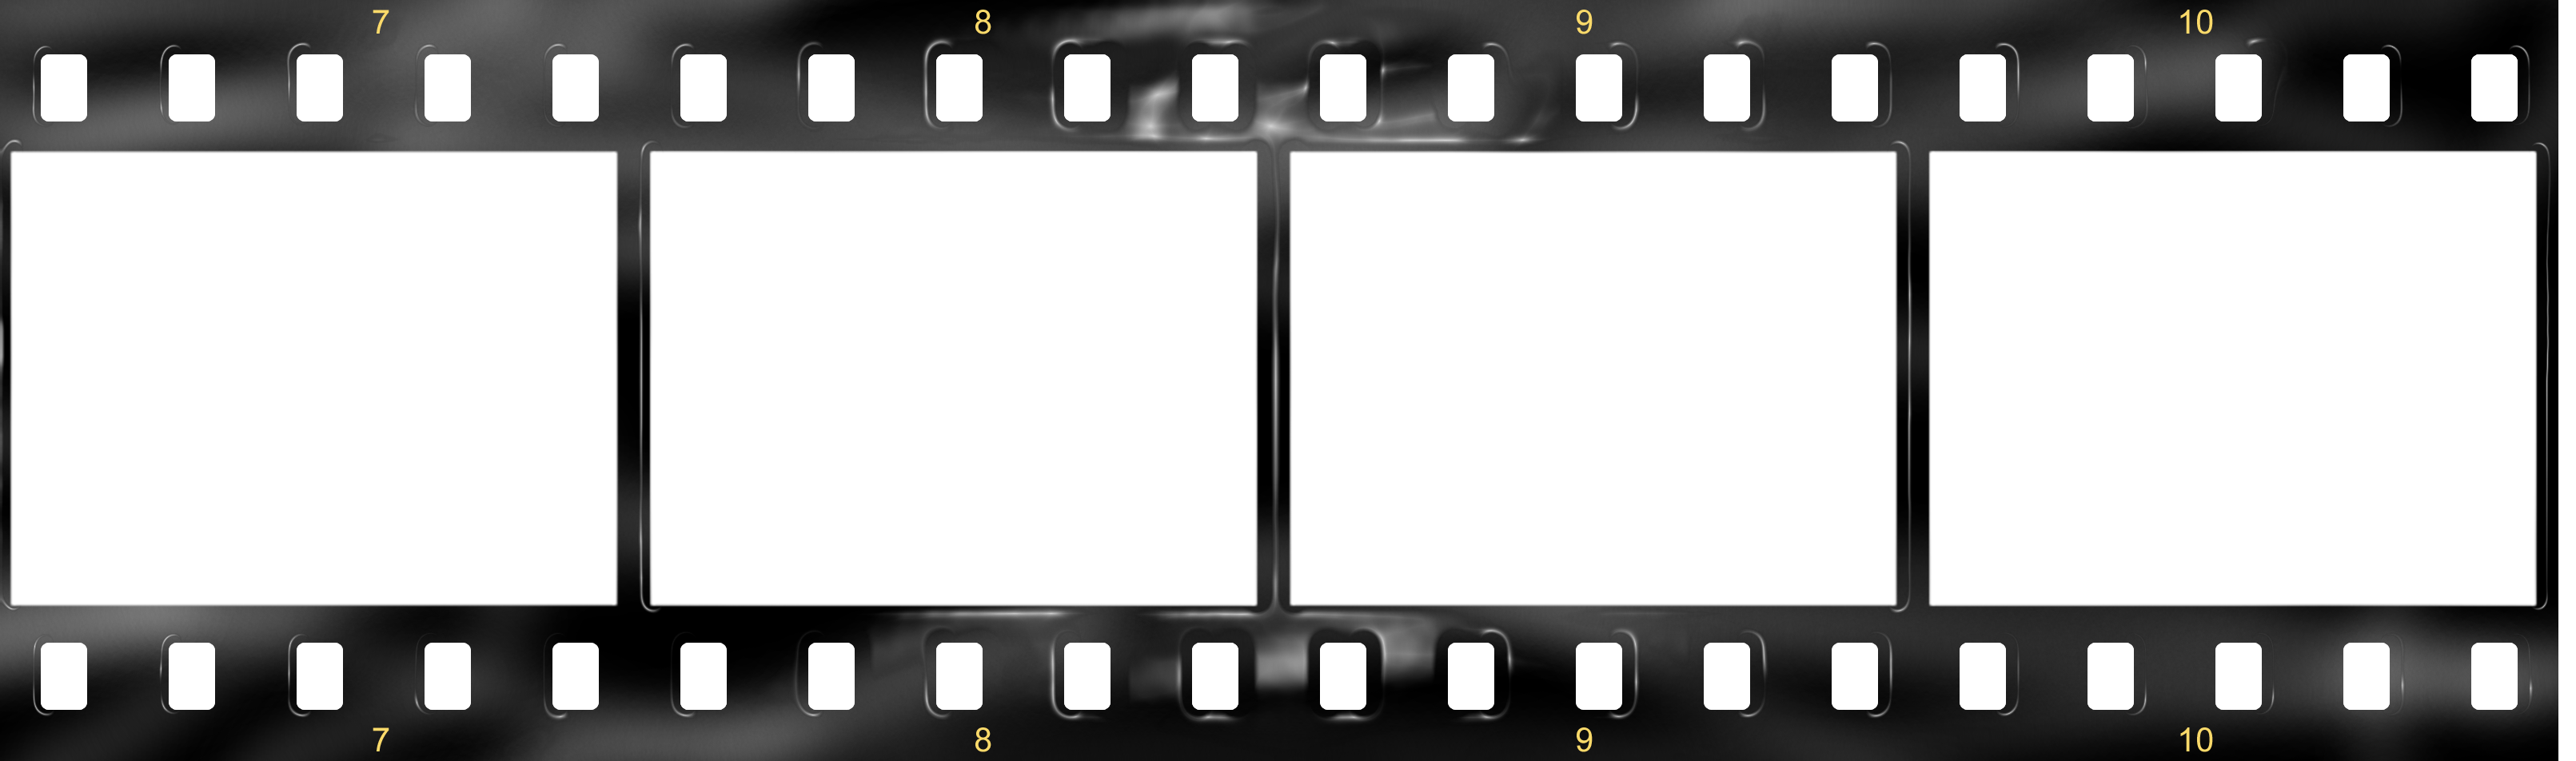 Film strip template vertical images for Printable film strip template